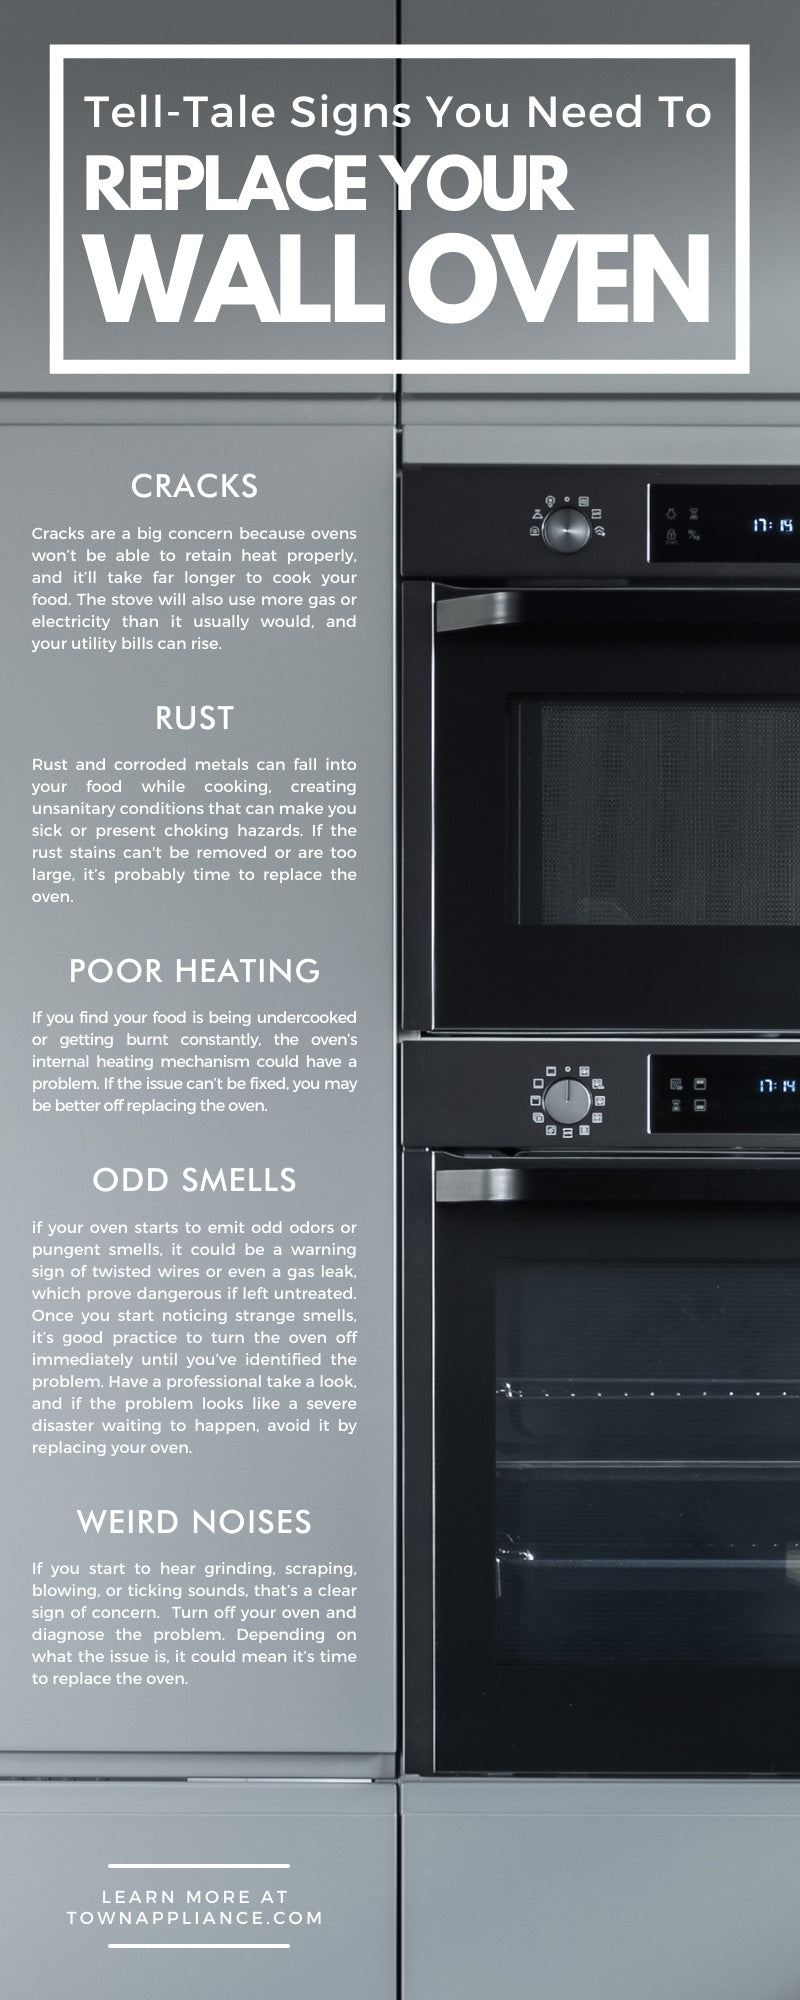 Tell-Tale Signs You Need To Replace Your Wall Oven